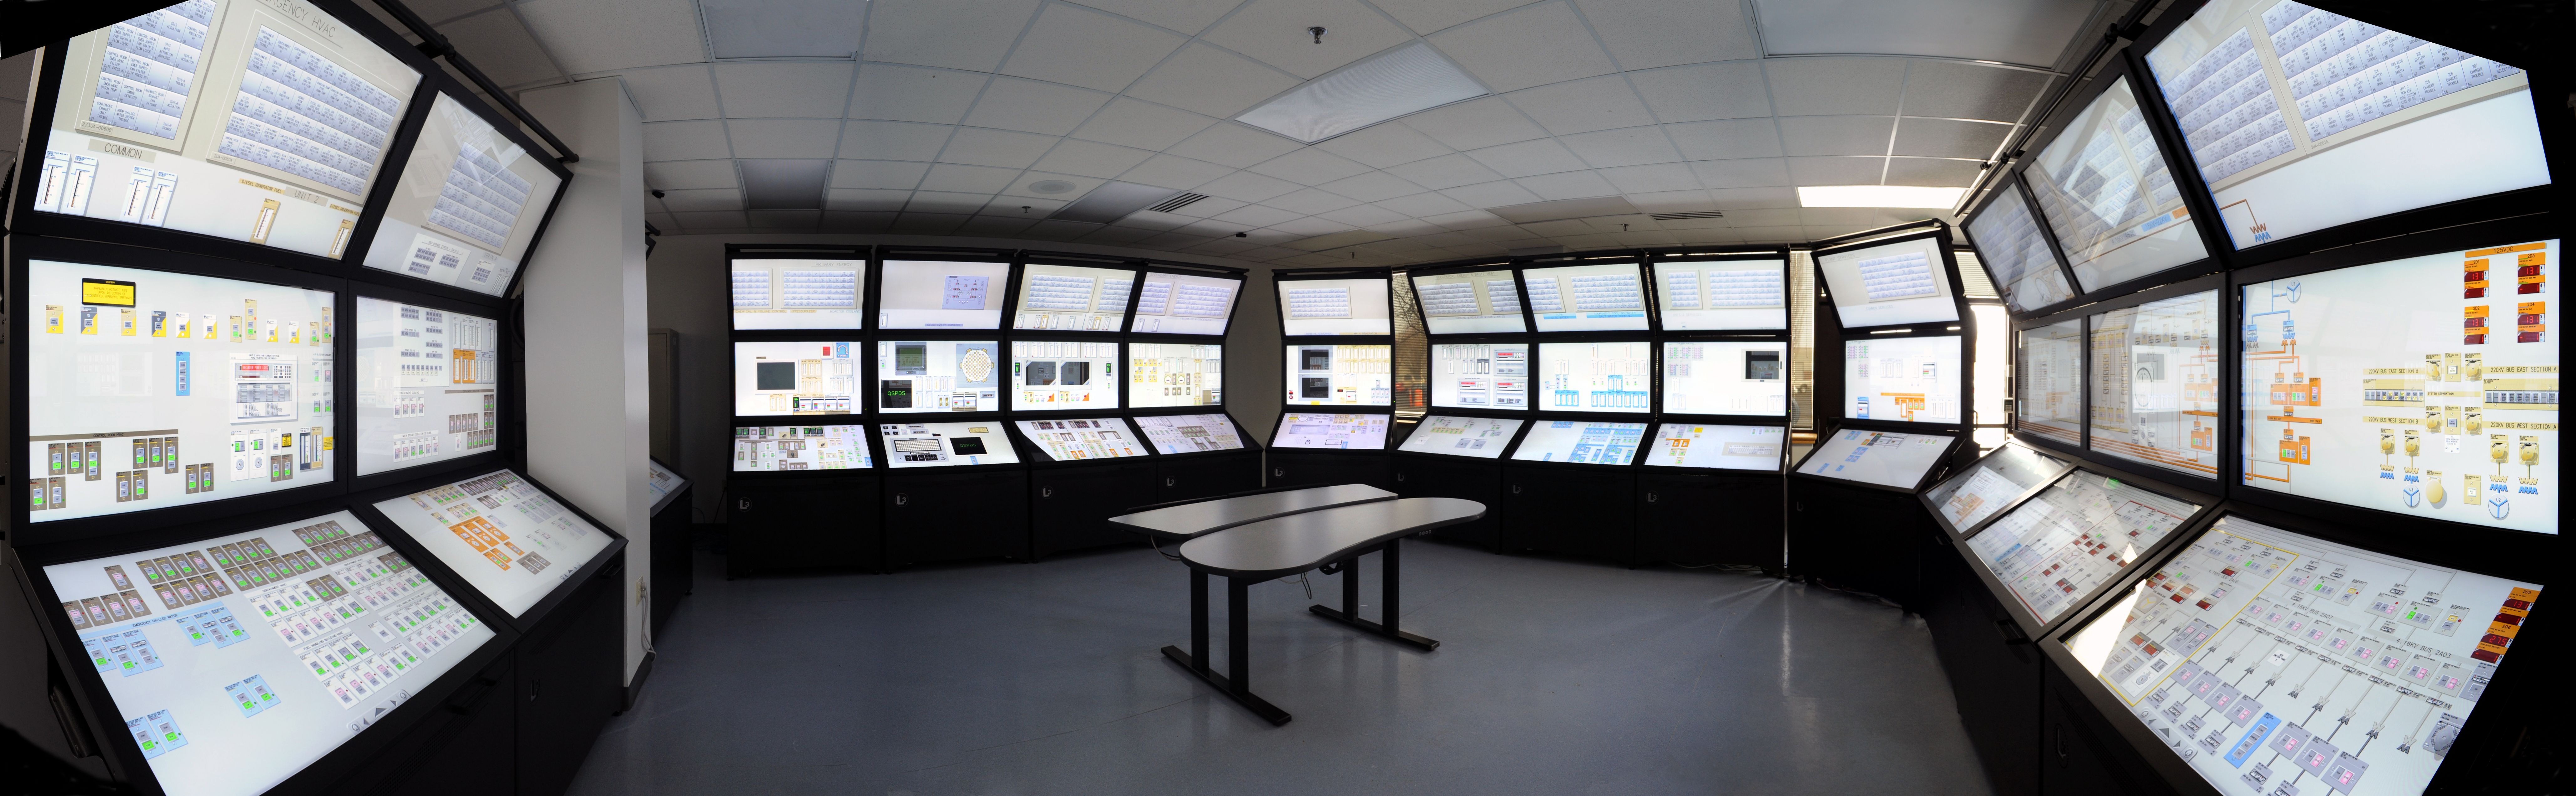 medium resolution of modernizing nuclear power plants to help extend their operating lifetimes is no small task but the endeavor offers an opportunity to improve control room